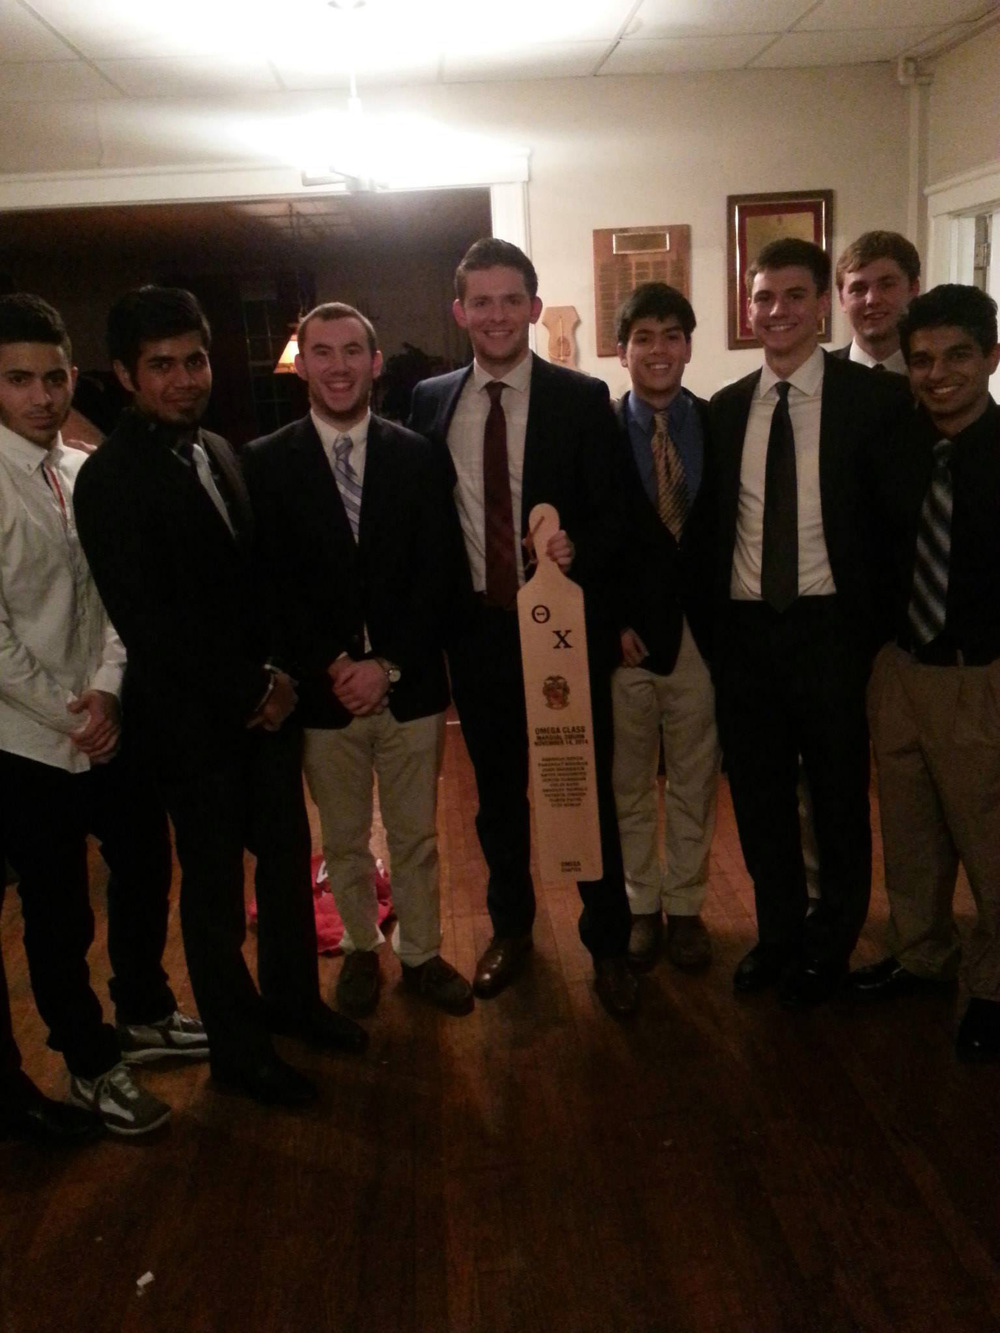 Initiation Night - Fall 2014 - L to R: Luis Roman, Parangat Bhaskar, John Broderick, Marshal Sean James, Bradley James Nichols, Patrick O'Brien, Kevin DiGuiseppe and Parth Patel